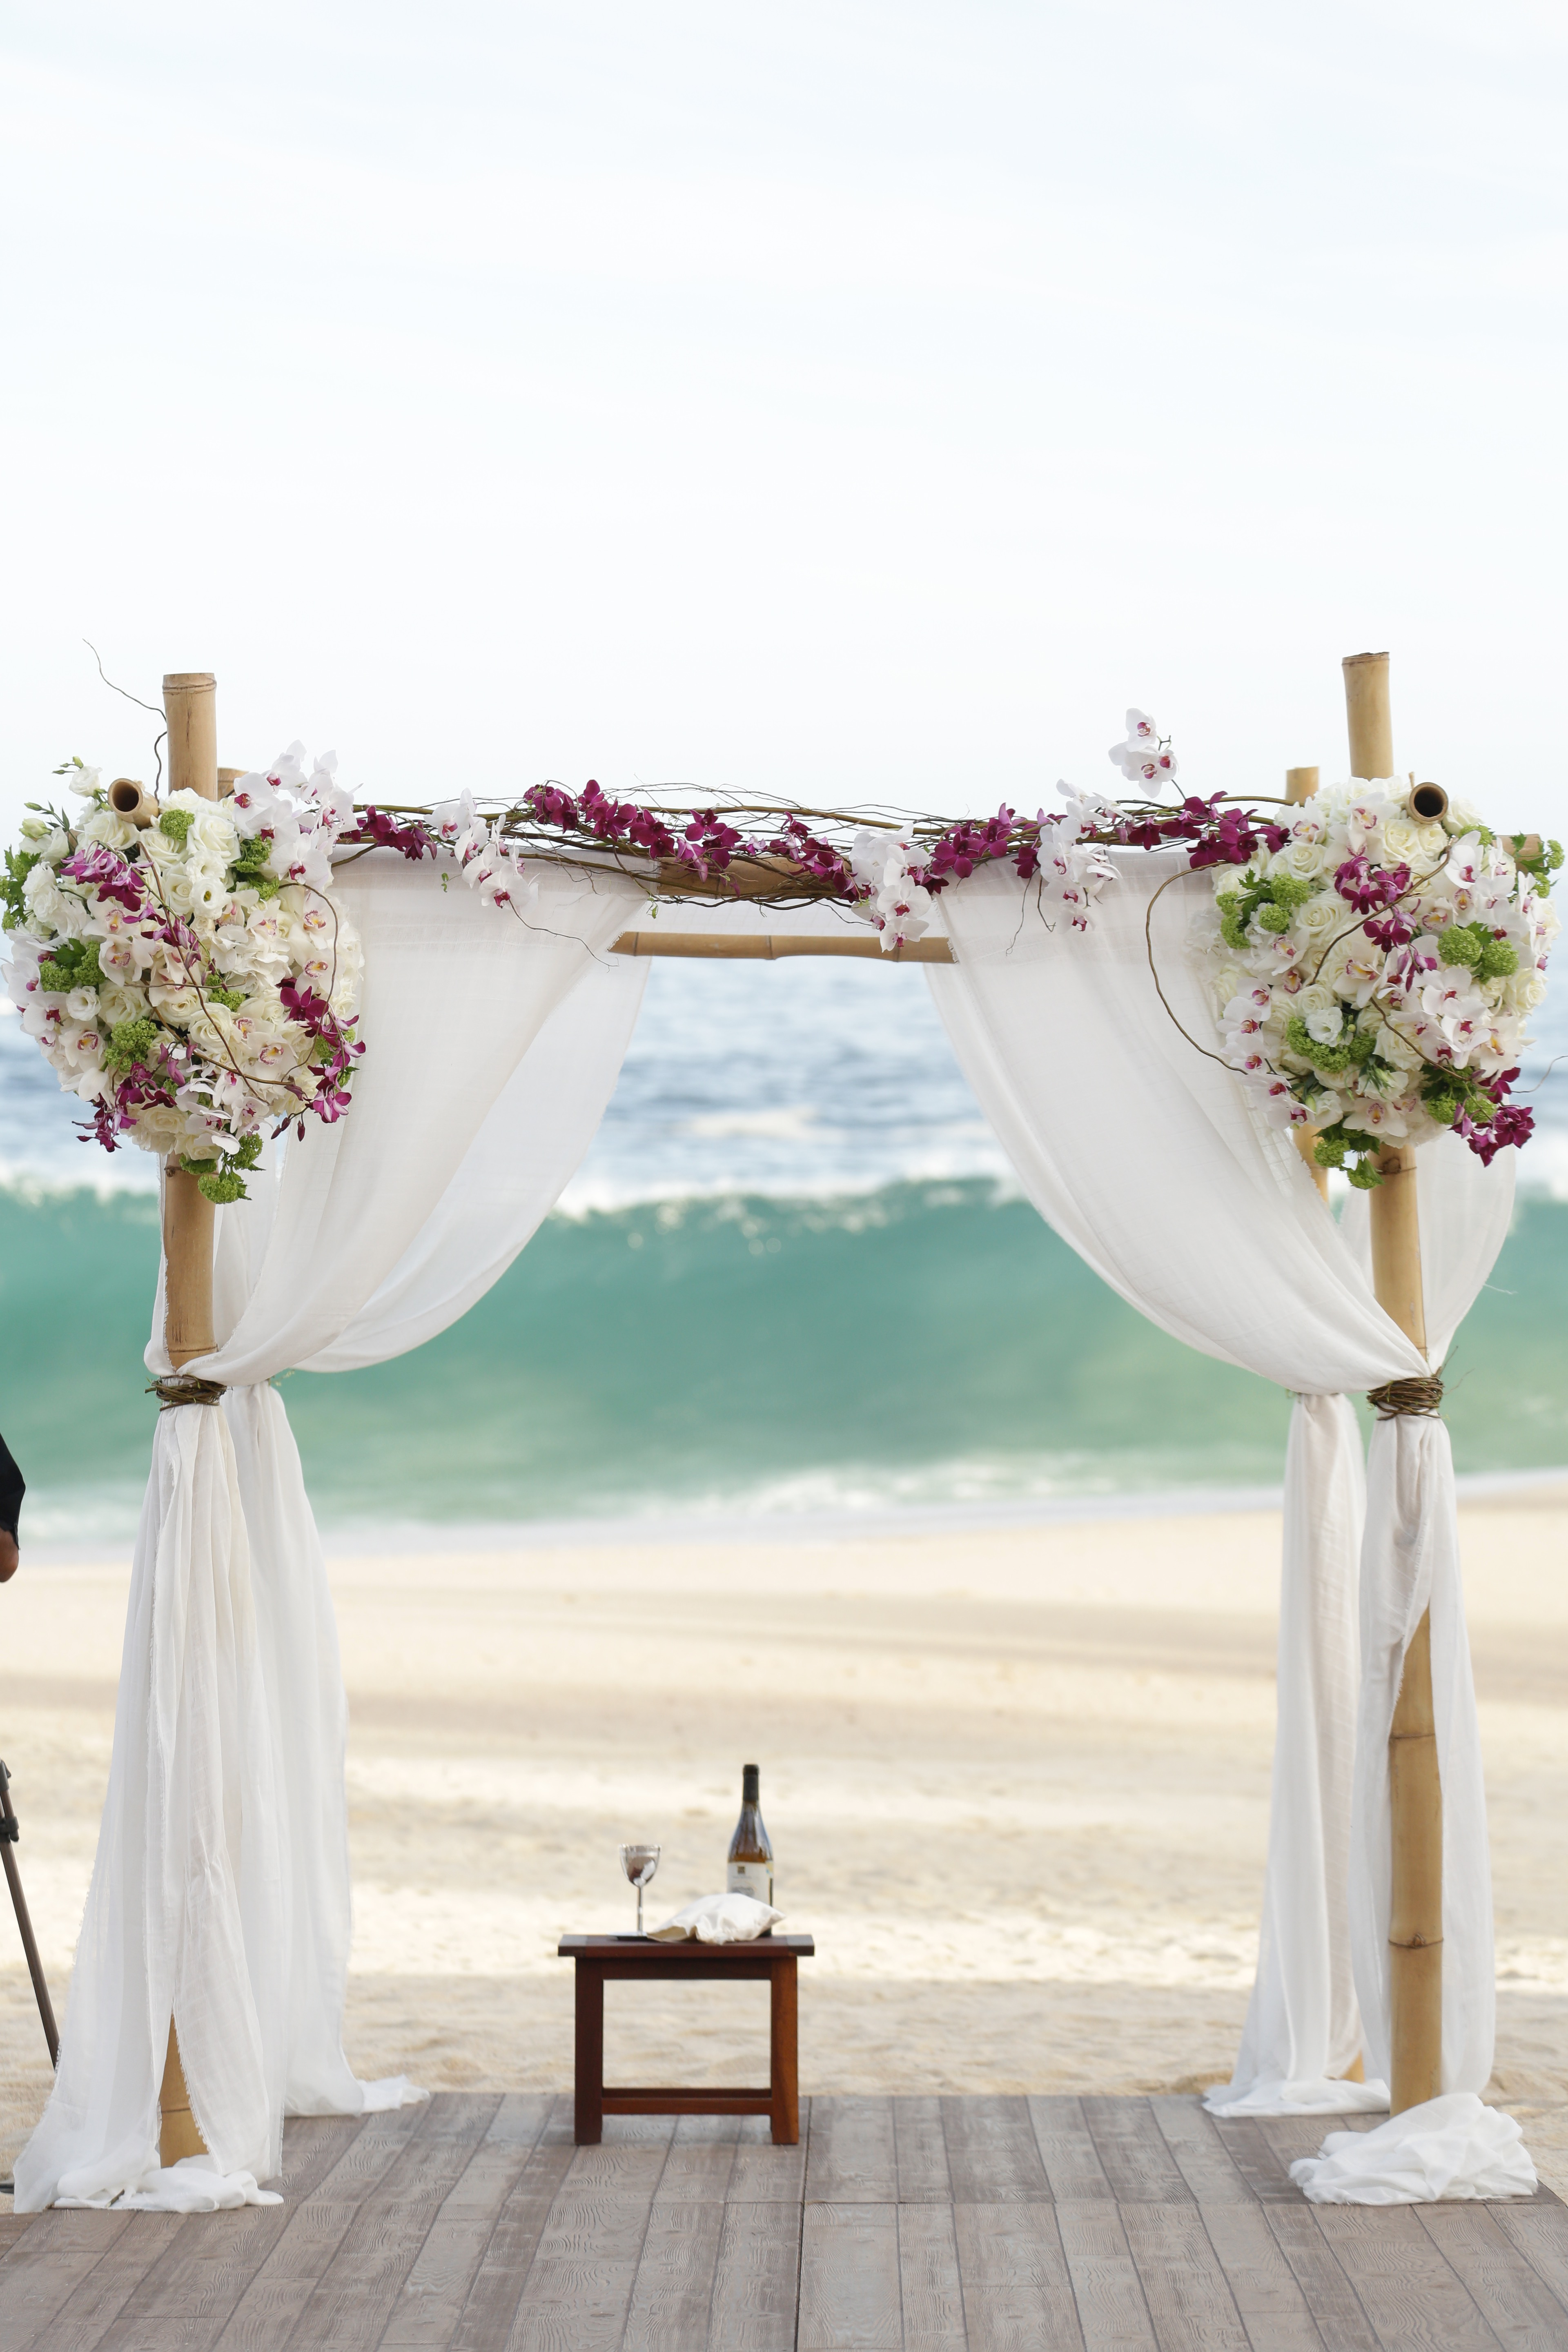 Destination Beach Wedding in Cabo - One&Only Palmilla